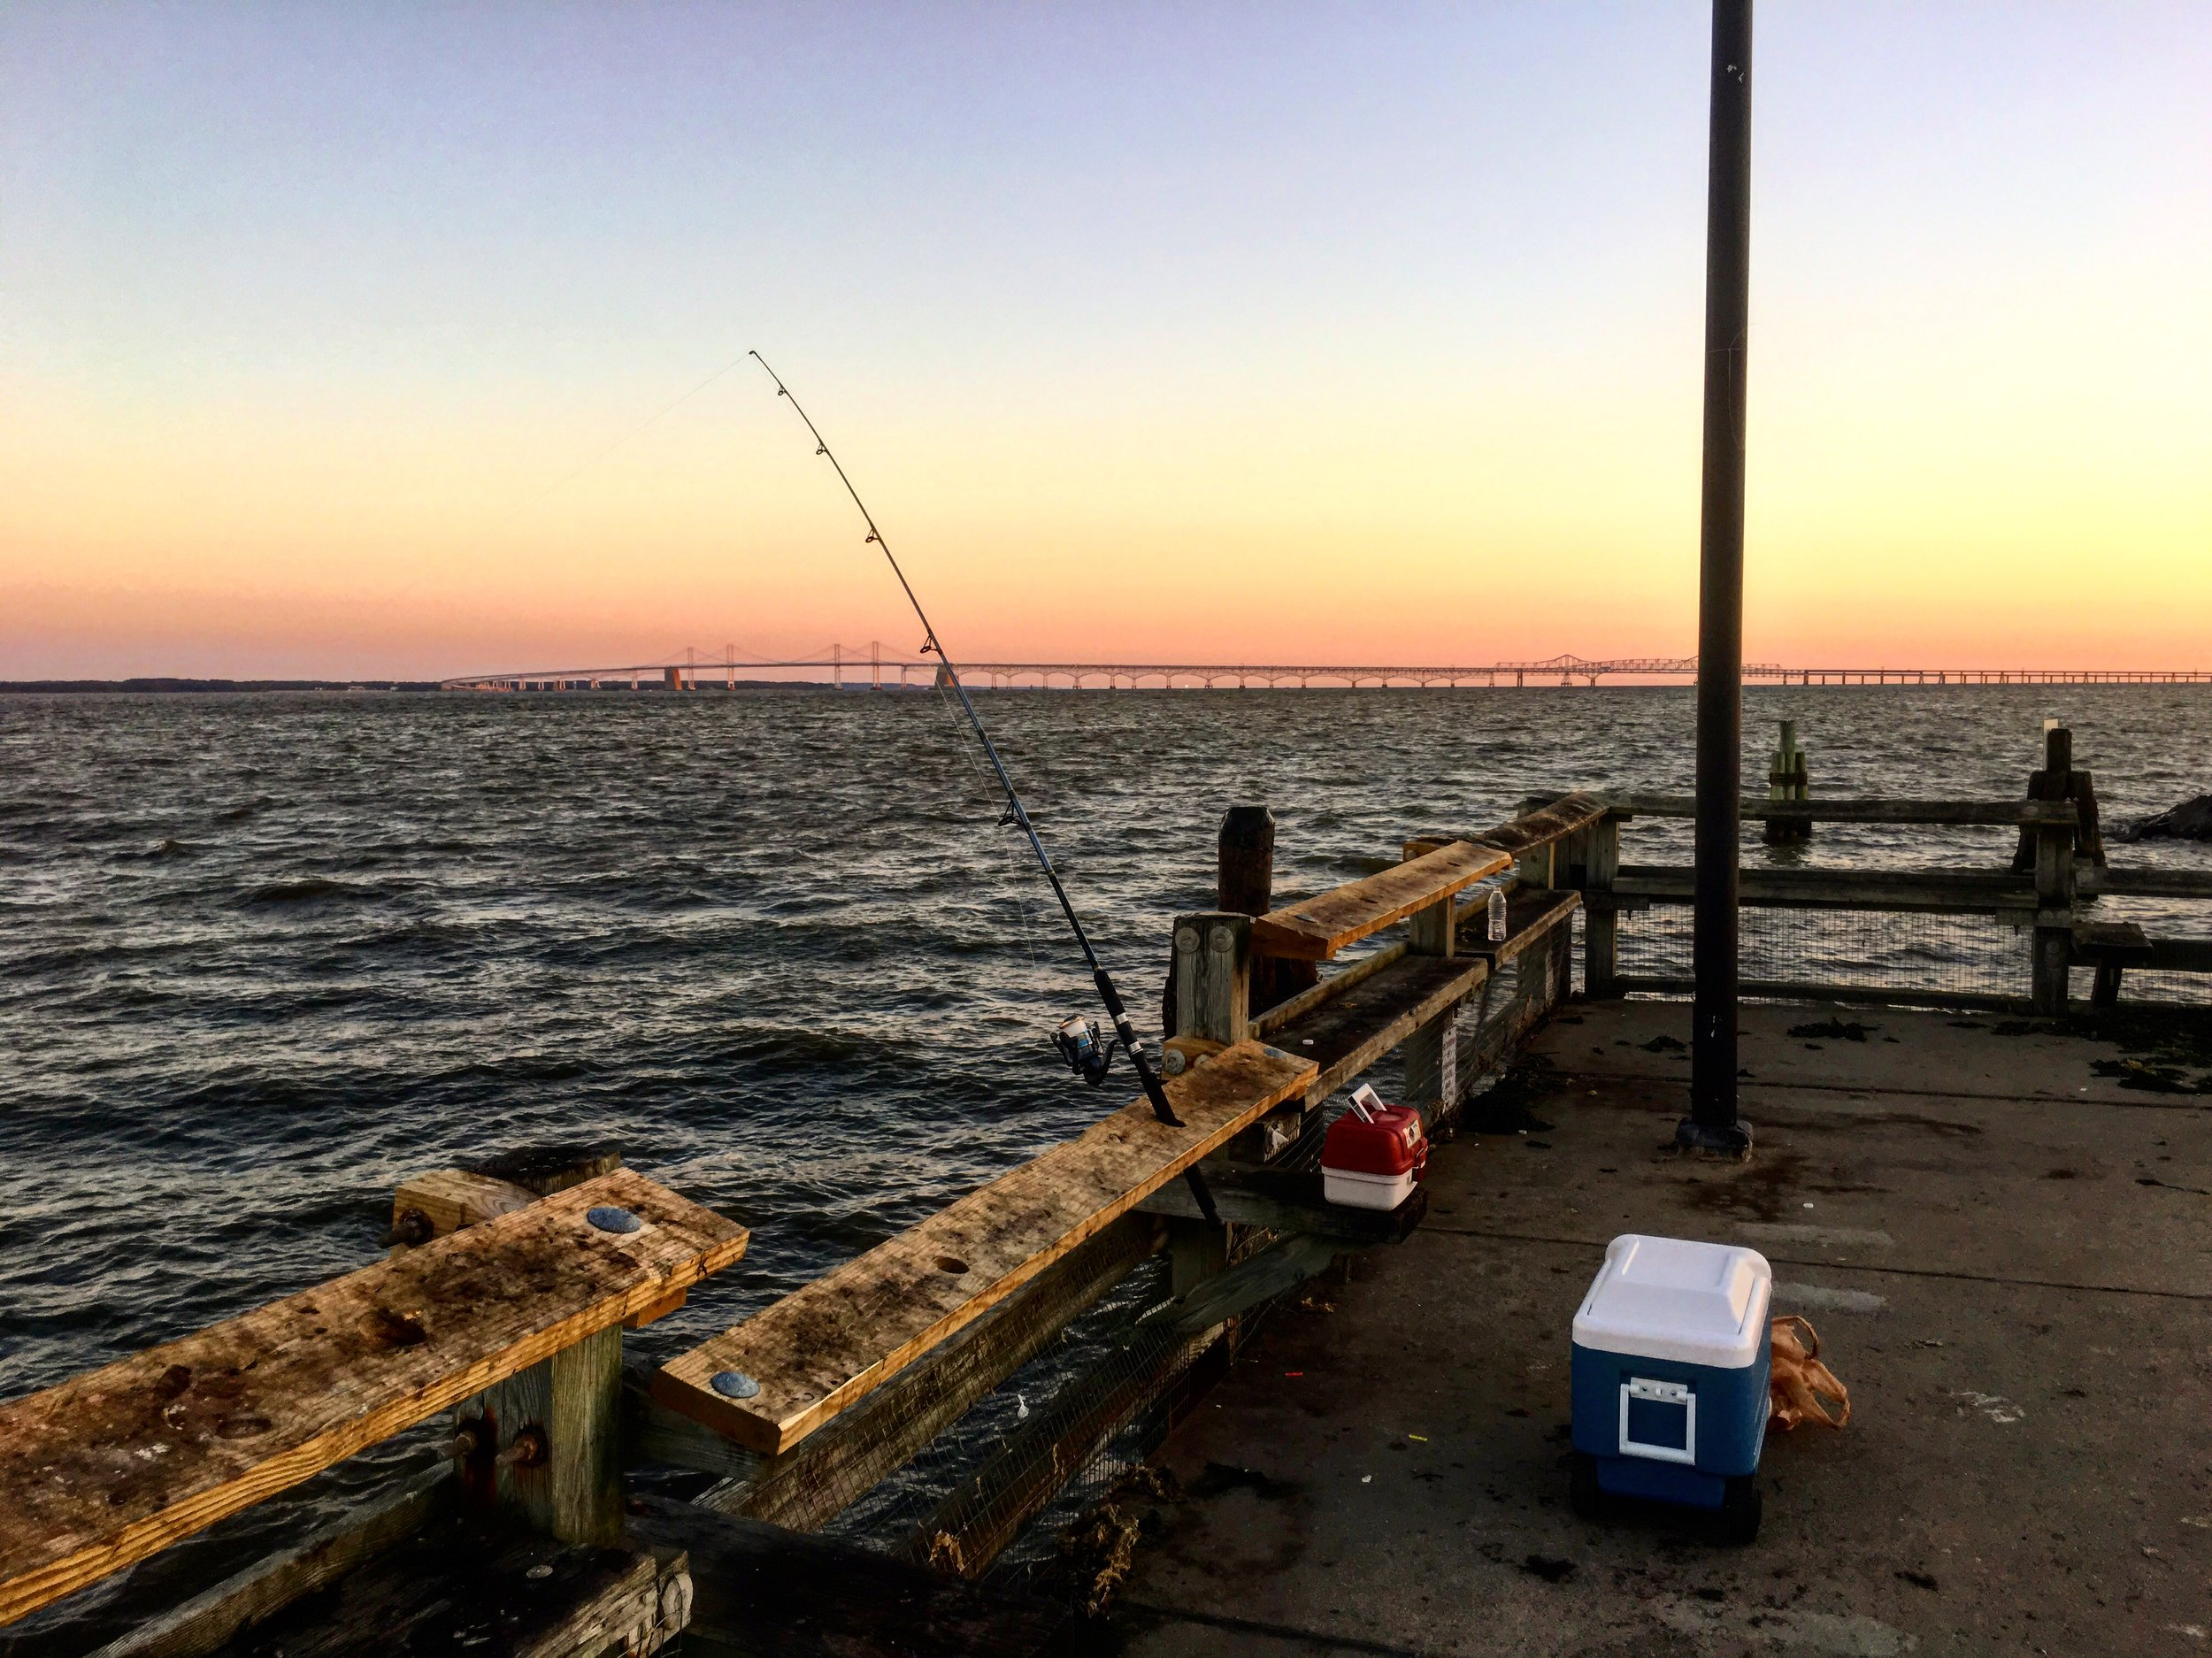 Sometimes all I need is to pack my fishing gear and just go. No planning no fuss, just a simple in the spur of the moment decision. That will definitely make me happy, even if I didn't catch a single fish.